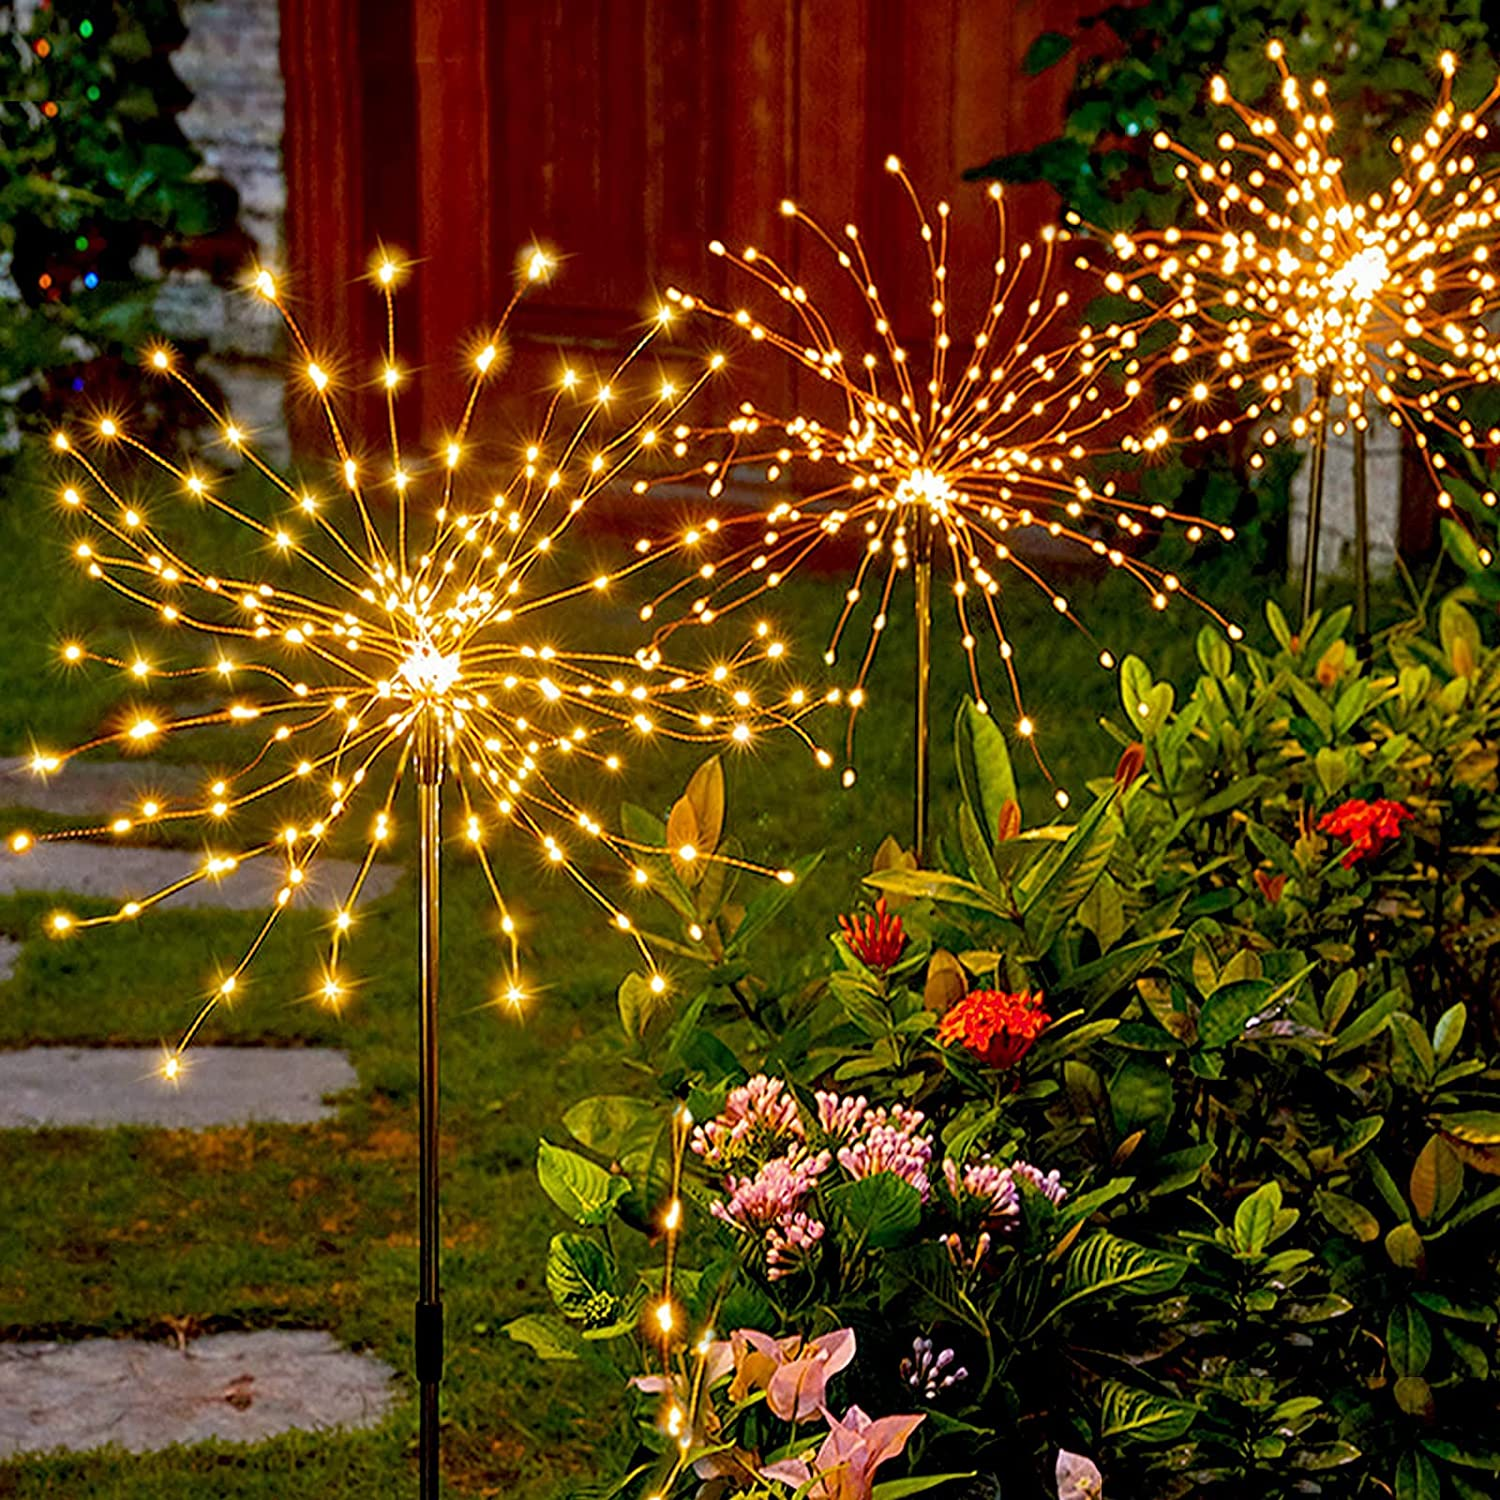 Firework Solar Lights Outdoor, BLUEGUAN 6 Pack Firework Lights with 630 LED and Flexible Copper Wire, 2 Lighting Modes Solar Fireworks Lights Outdoor Waterproof for Garden, Landscape, Pathway, Décor